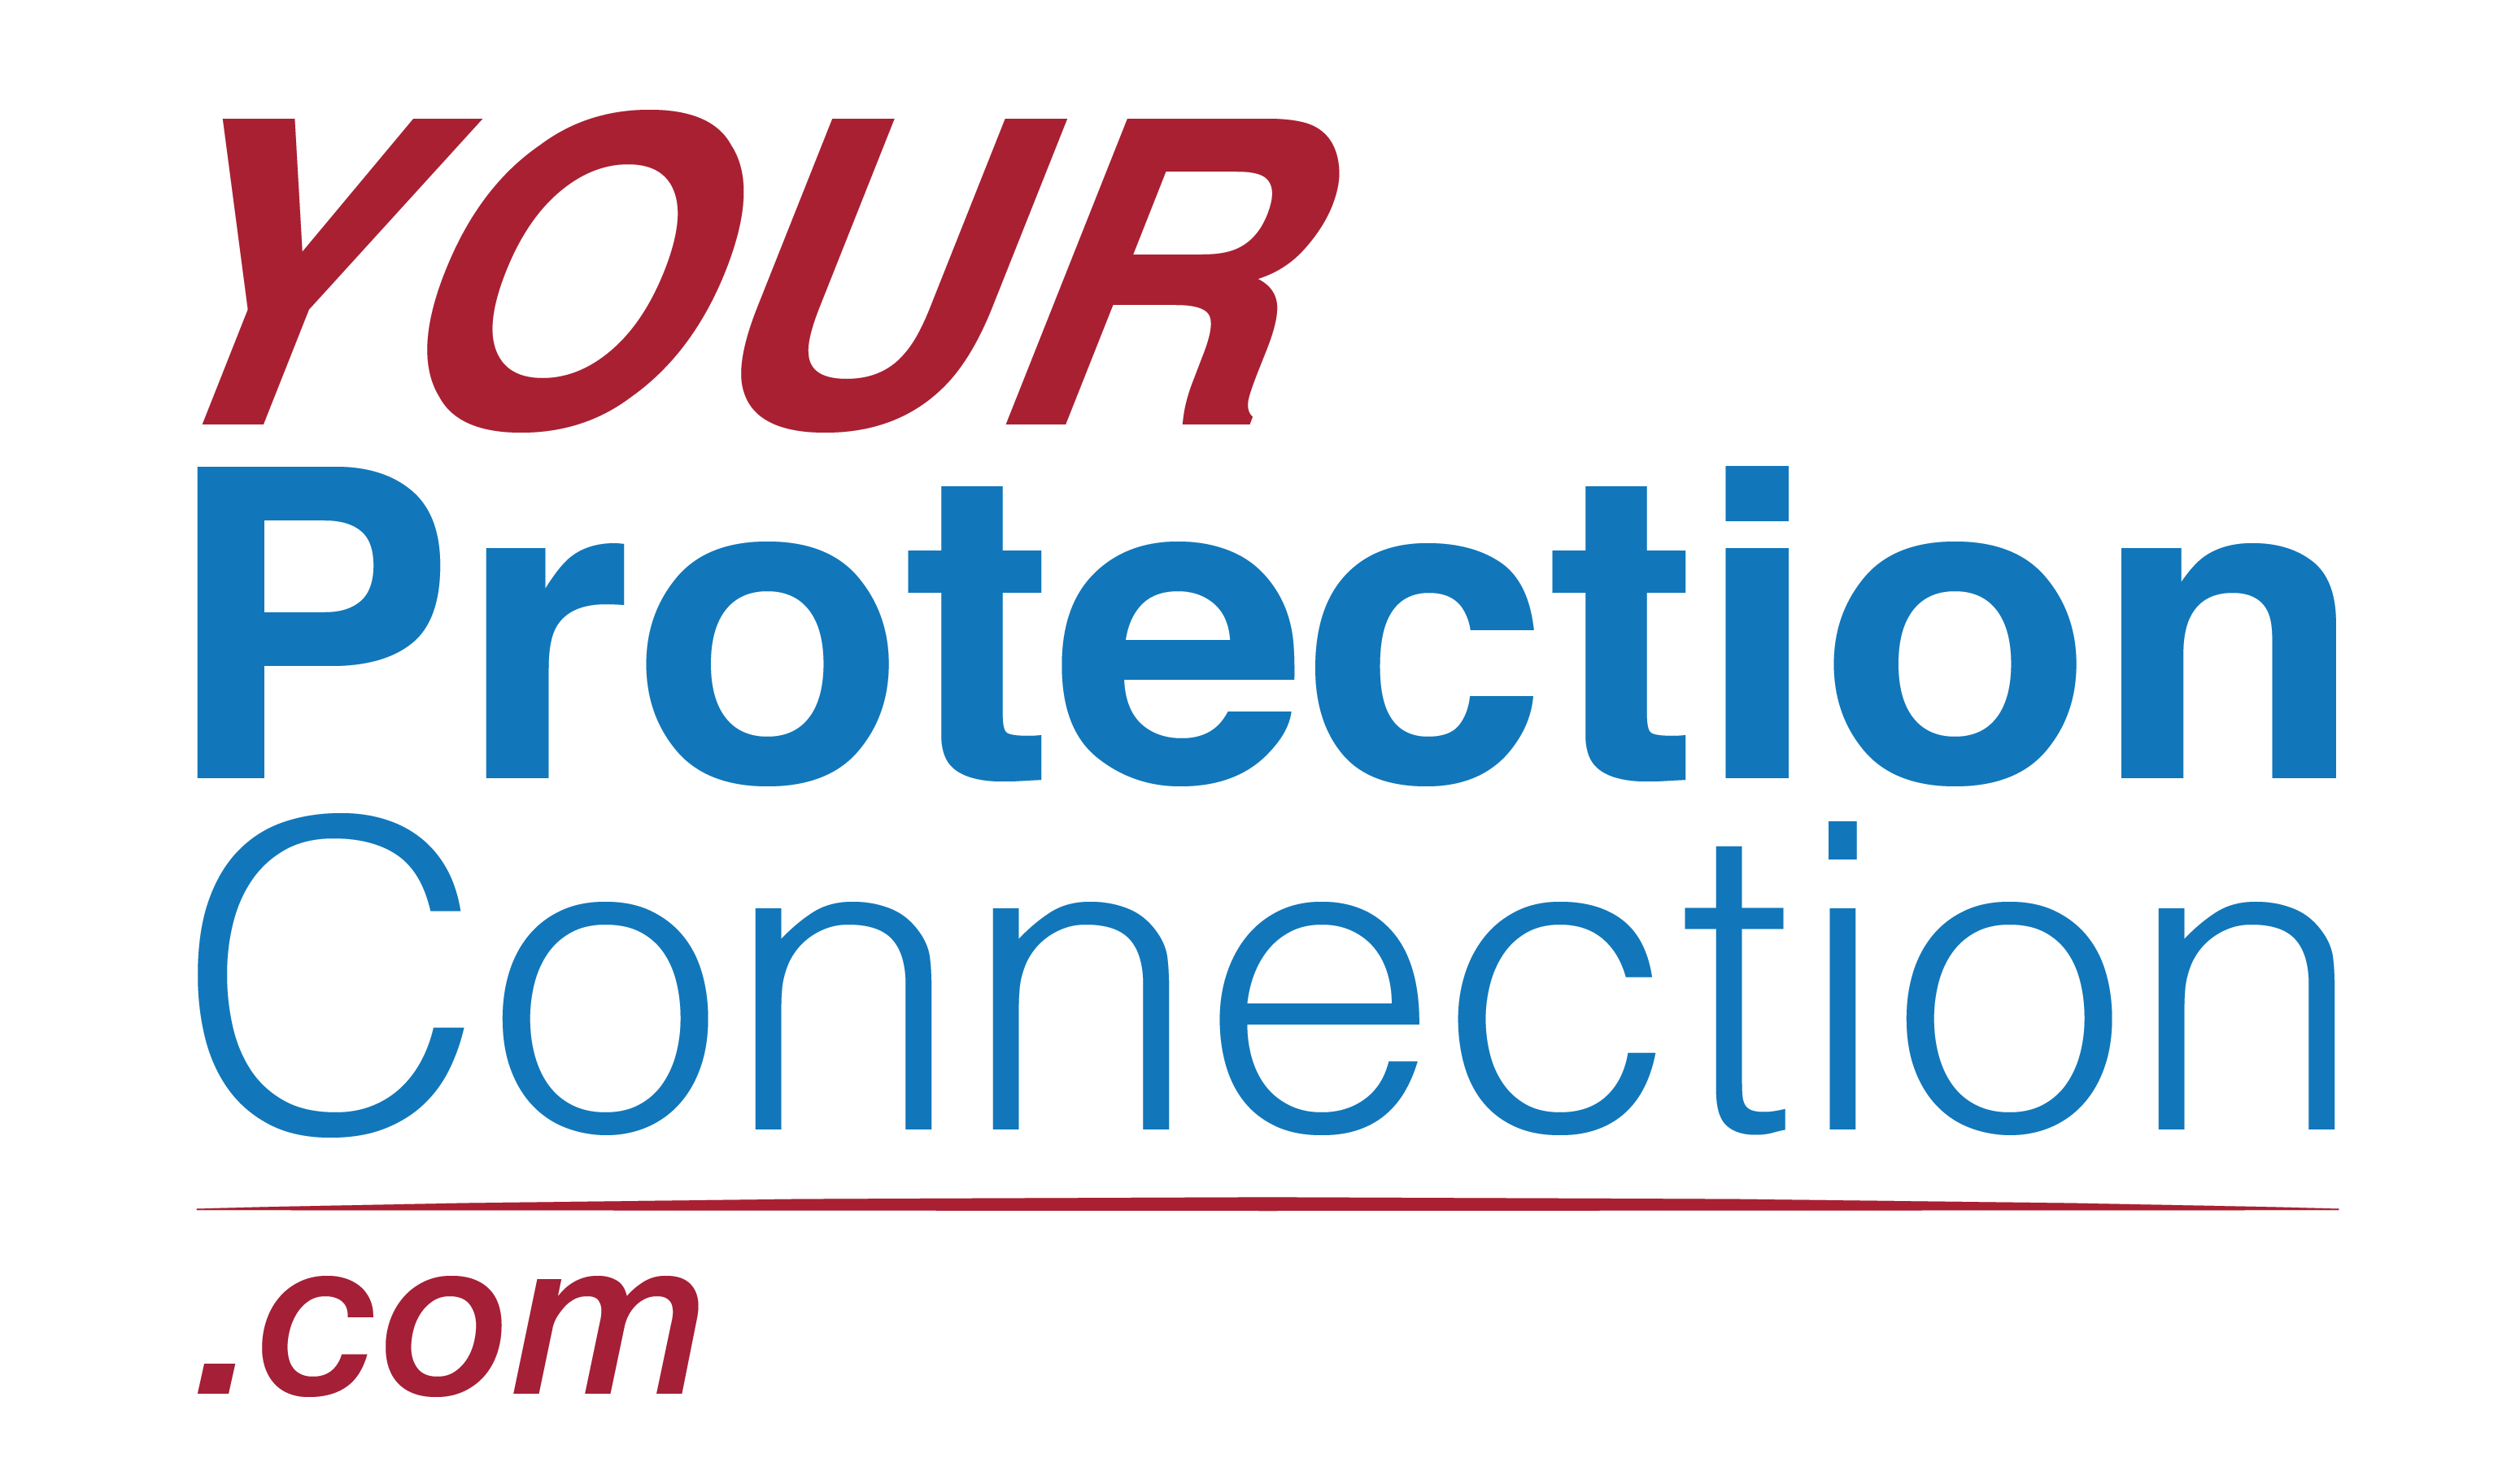 Your Protection Connection